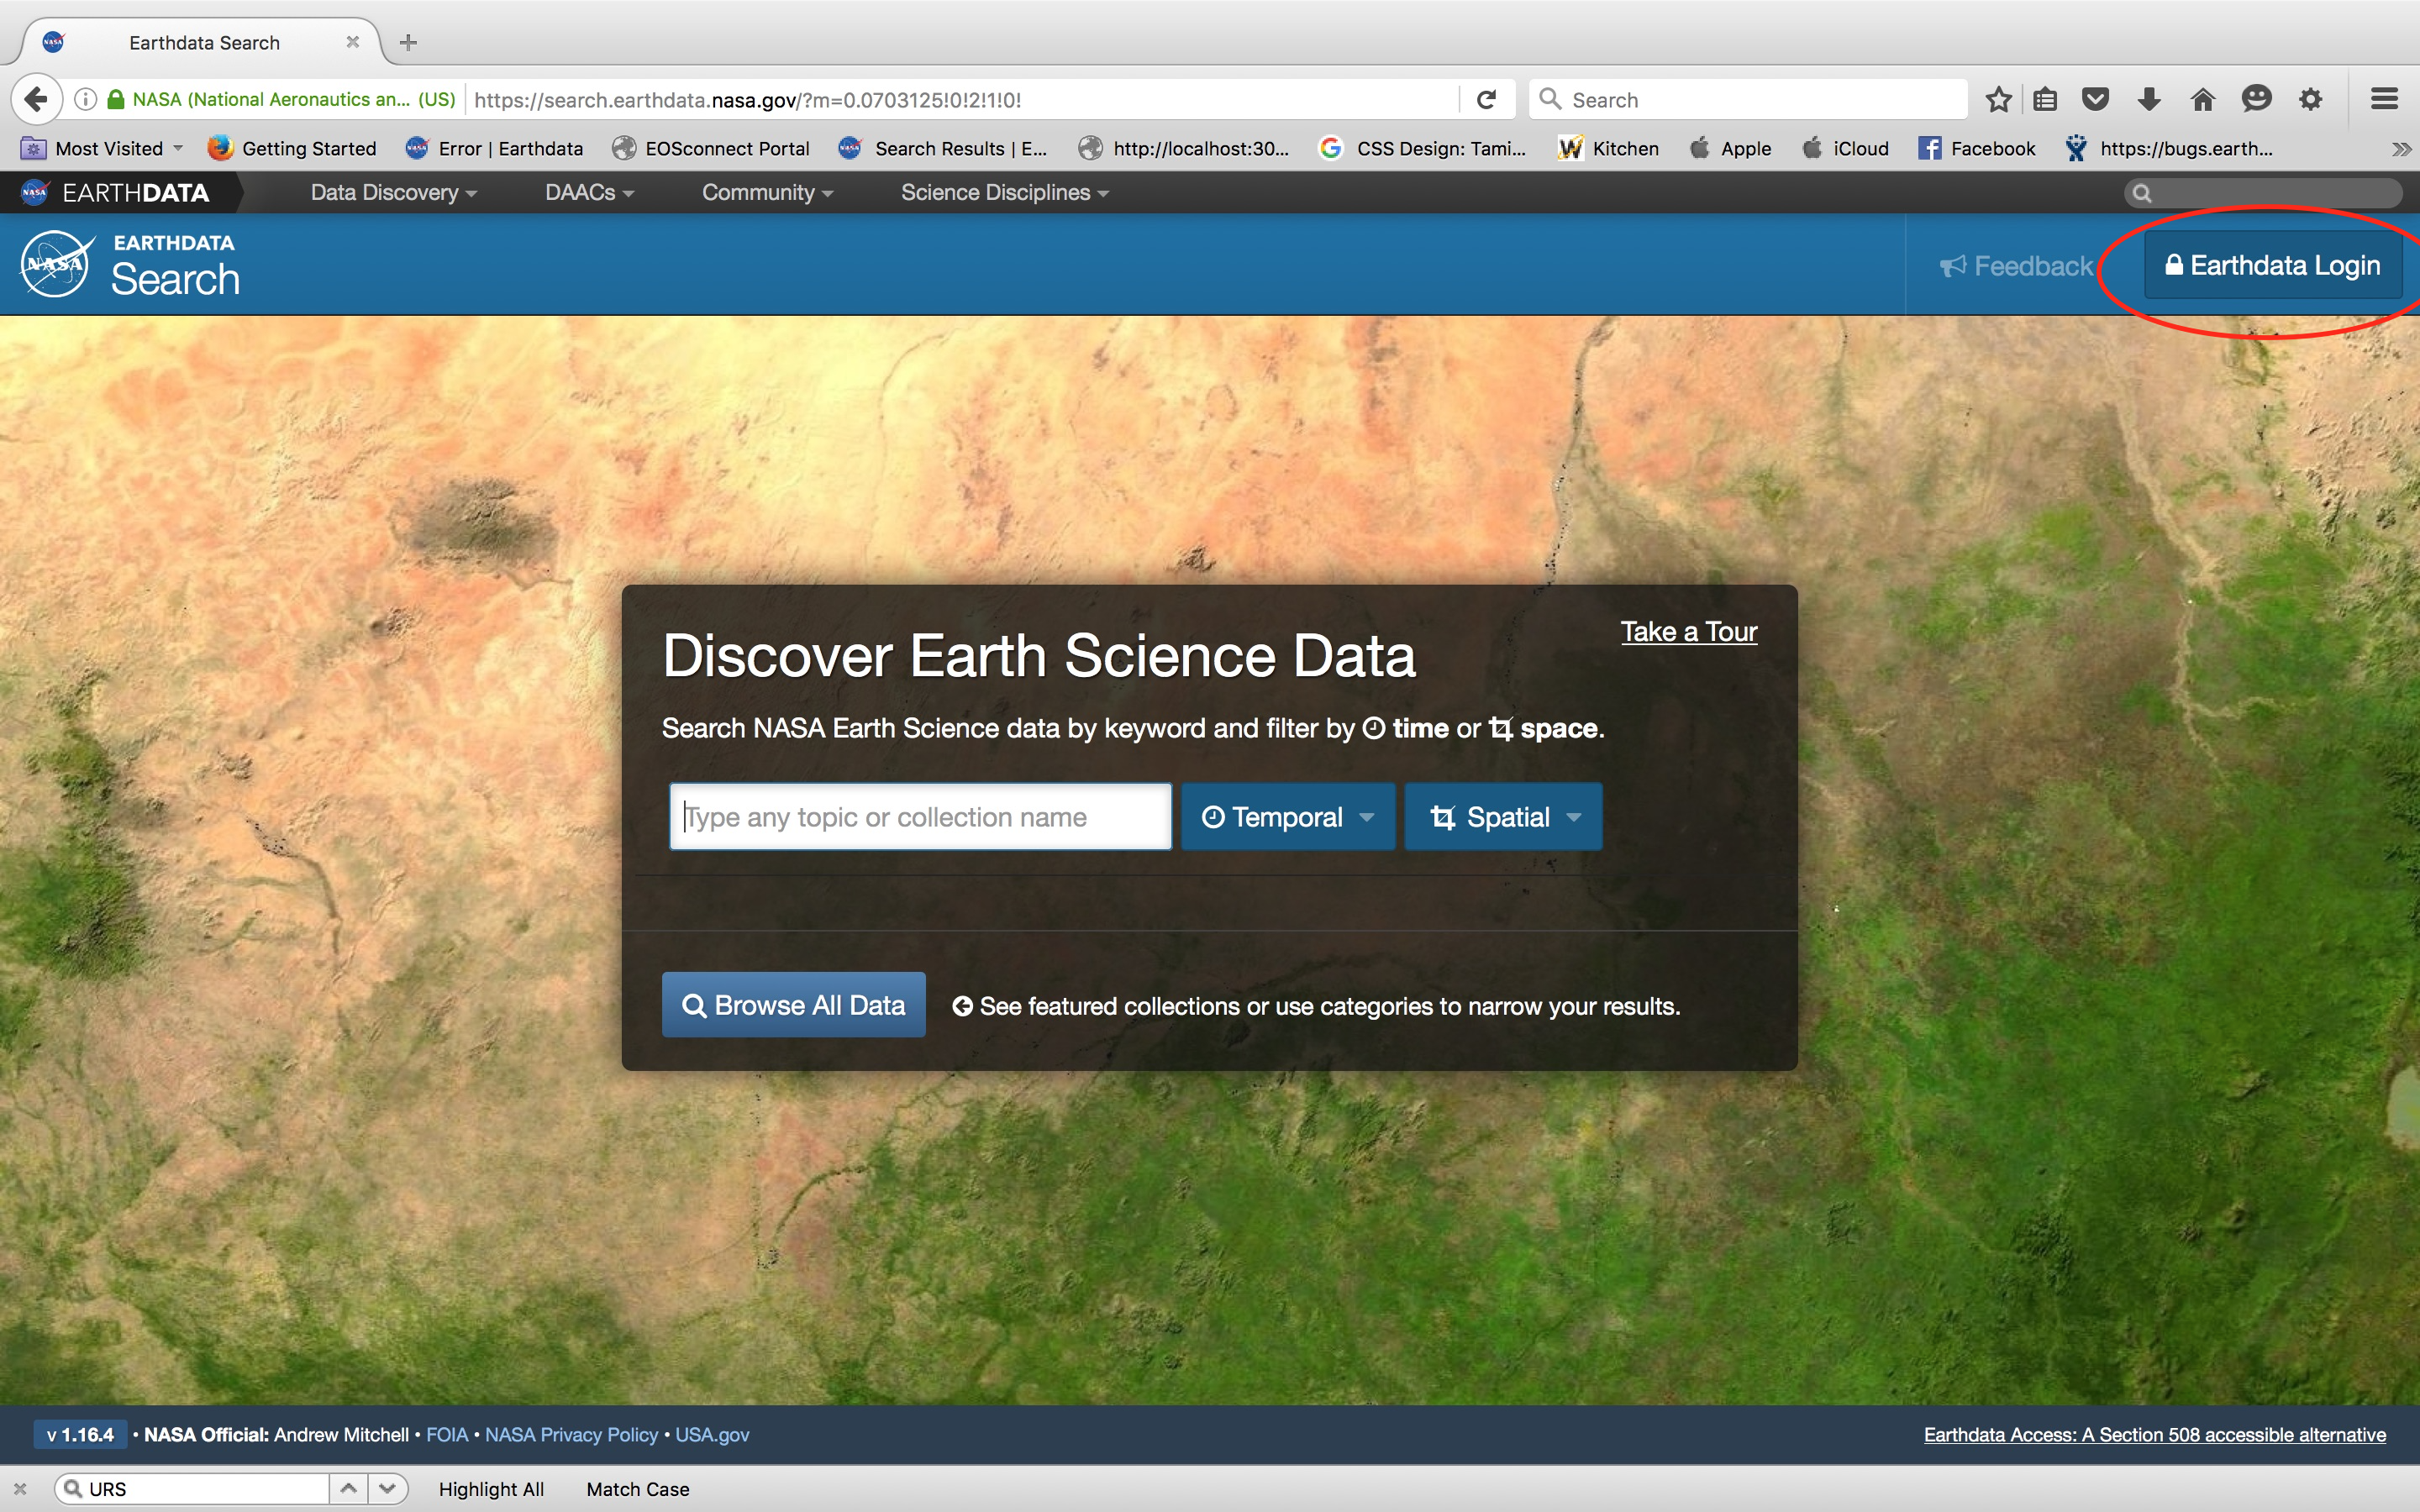 Earthdata Search website with the Earthdata Login button in the upper right circled in red